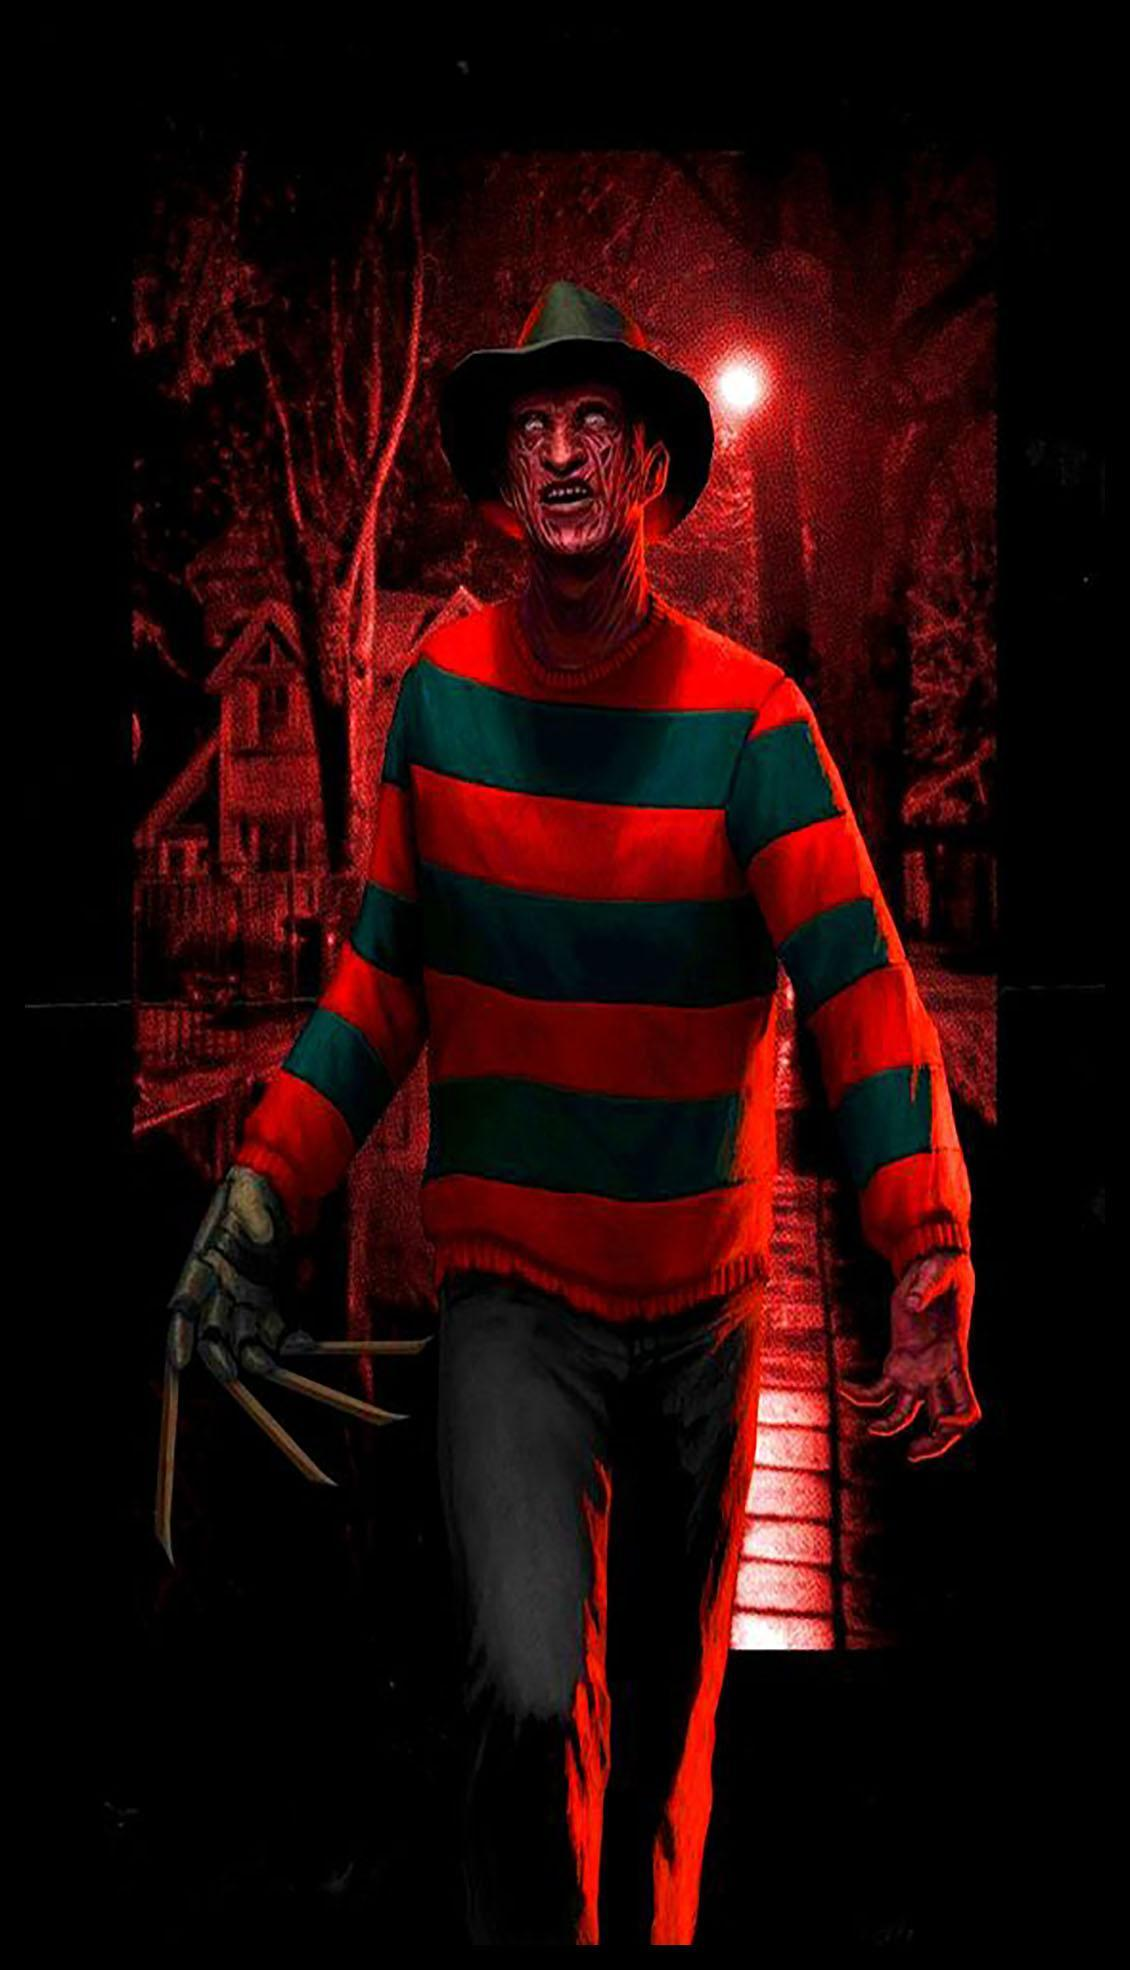 Freddy Krueger HD Wallpaper 2019 for Android - APK Download